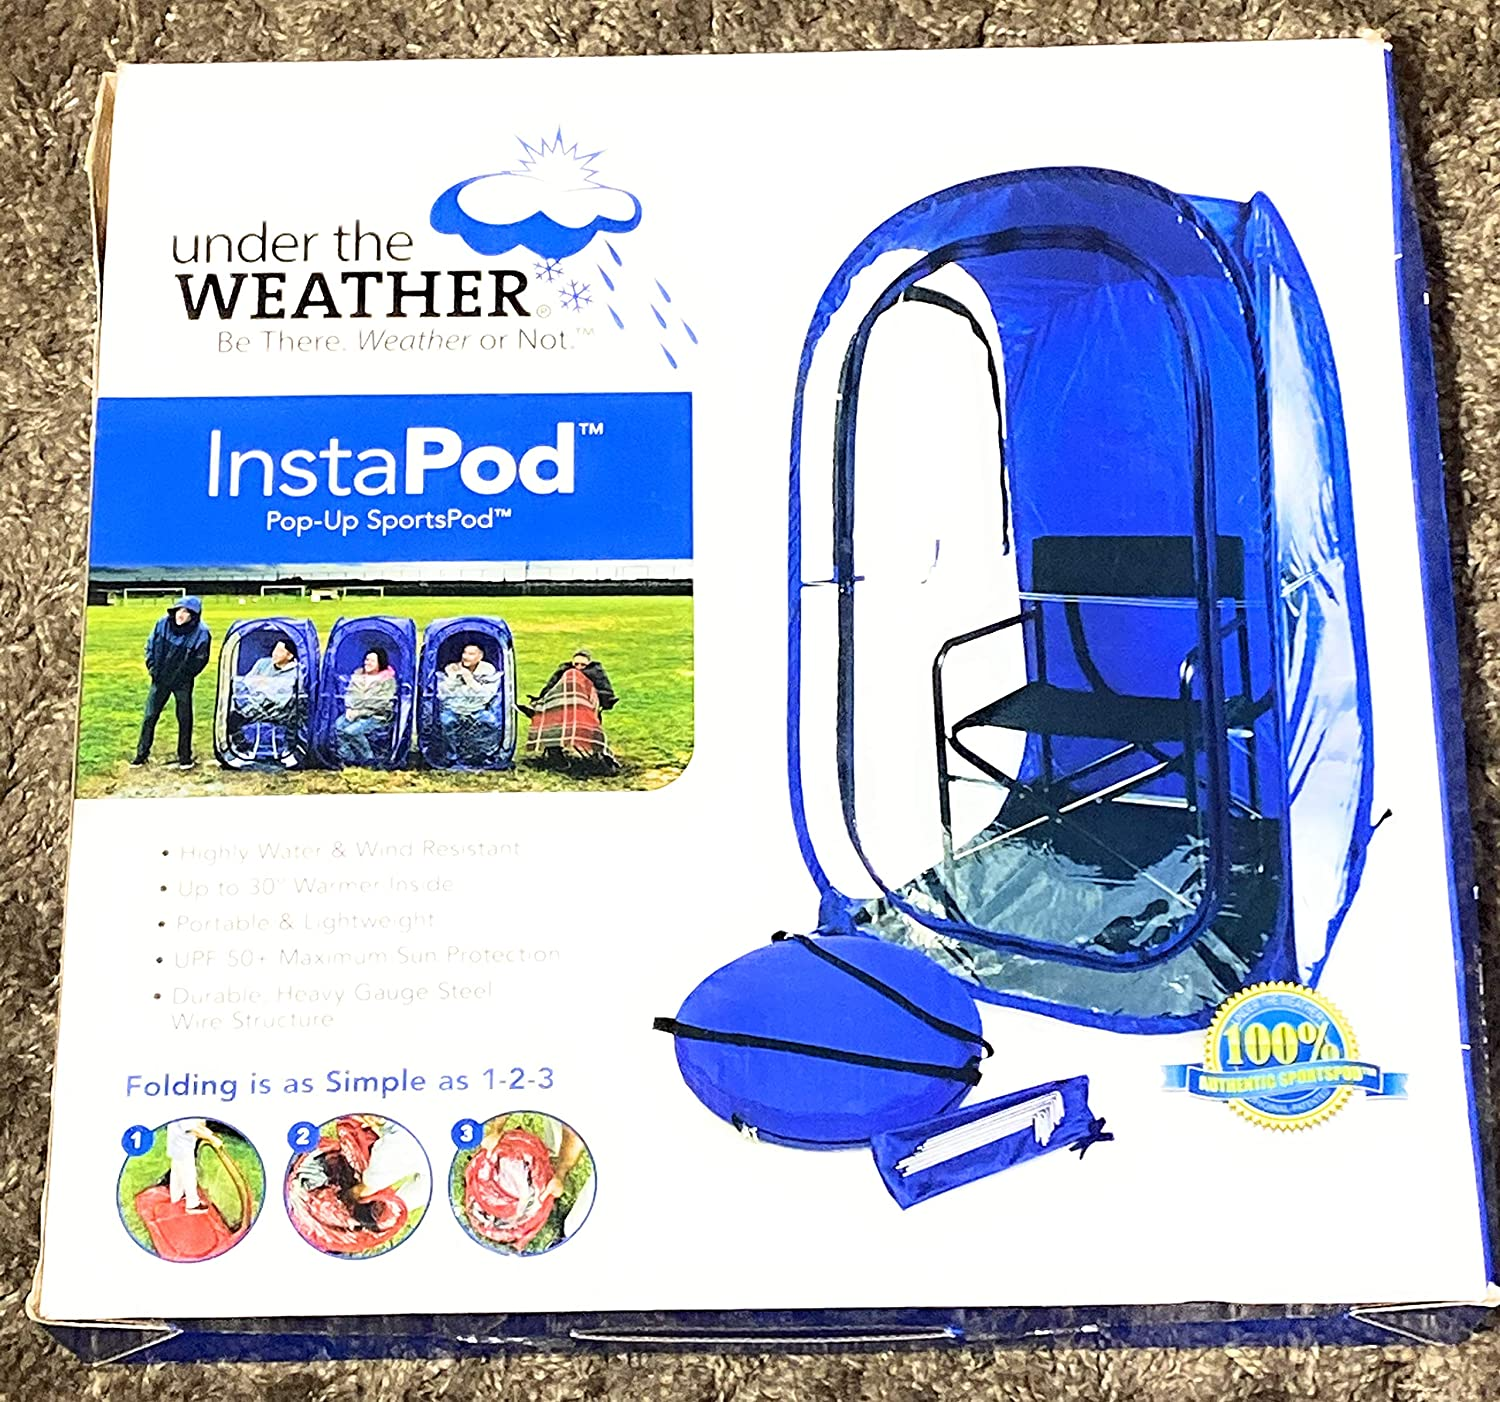 Pop-Up Tent Shelter Shade Sports Camping Outdoor Under the Weather InstaPod